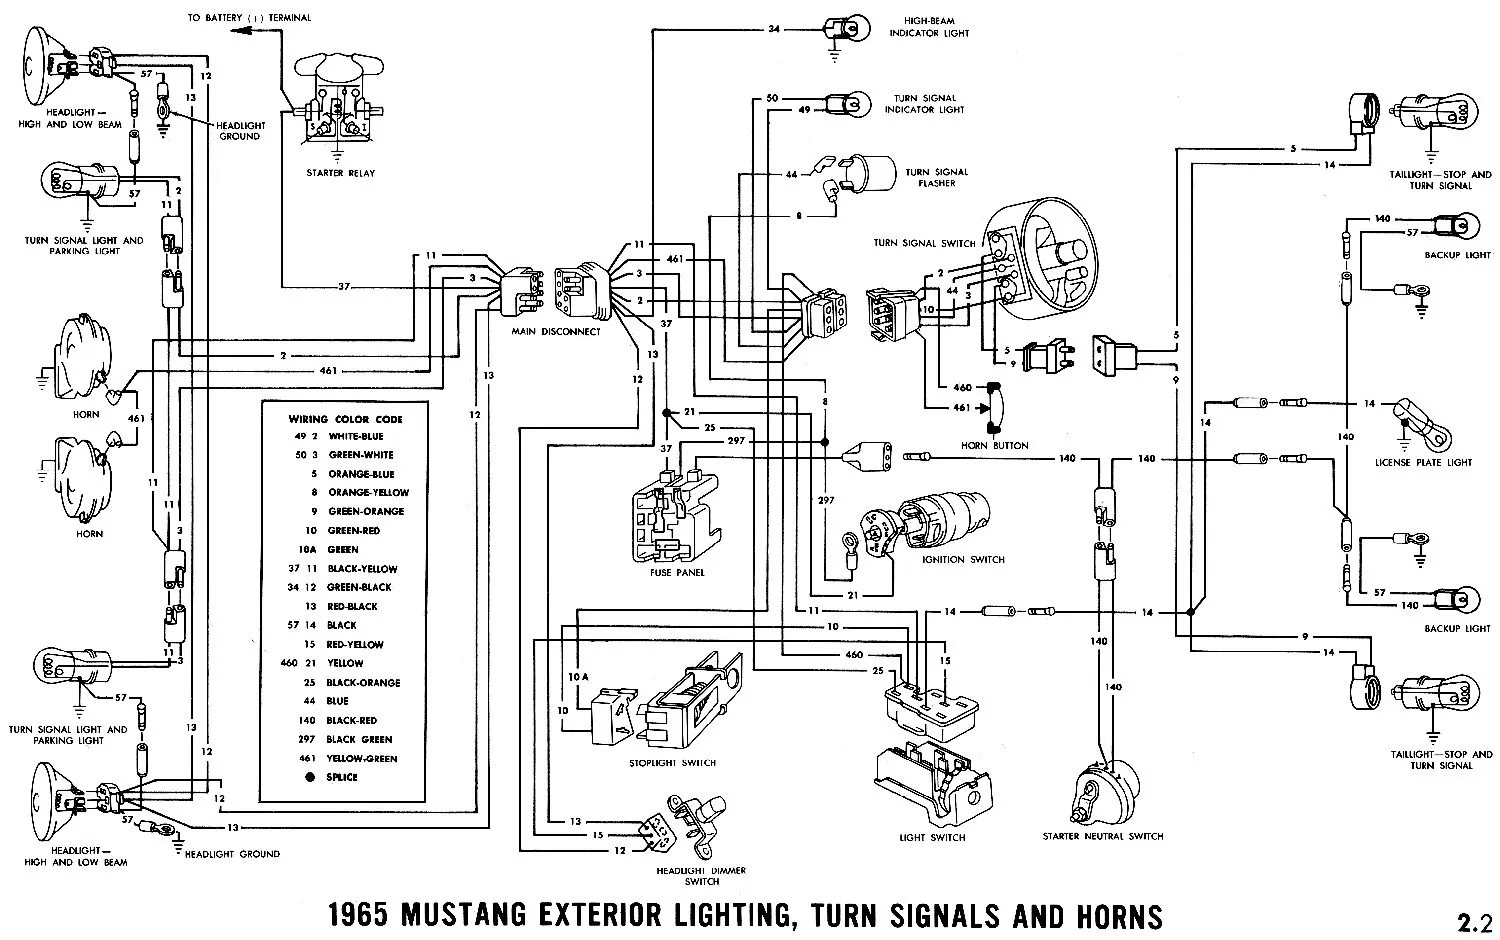 hight resolution of 1965 mustang wiring diagrams average joe restoration 65 mustang under dash wiring diagram 1965 mustang dash wiring diagram